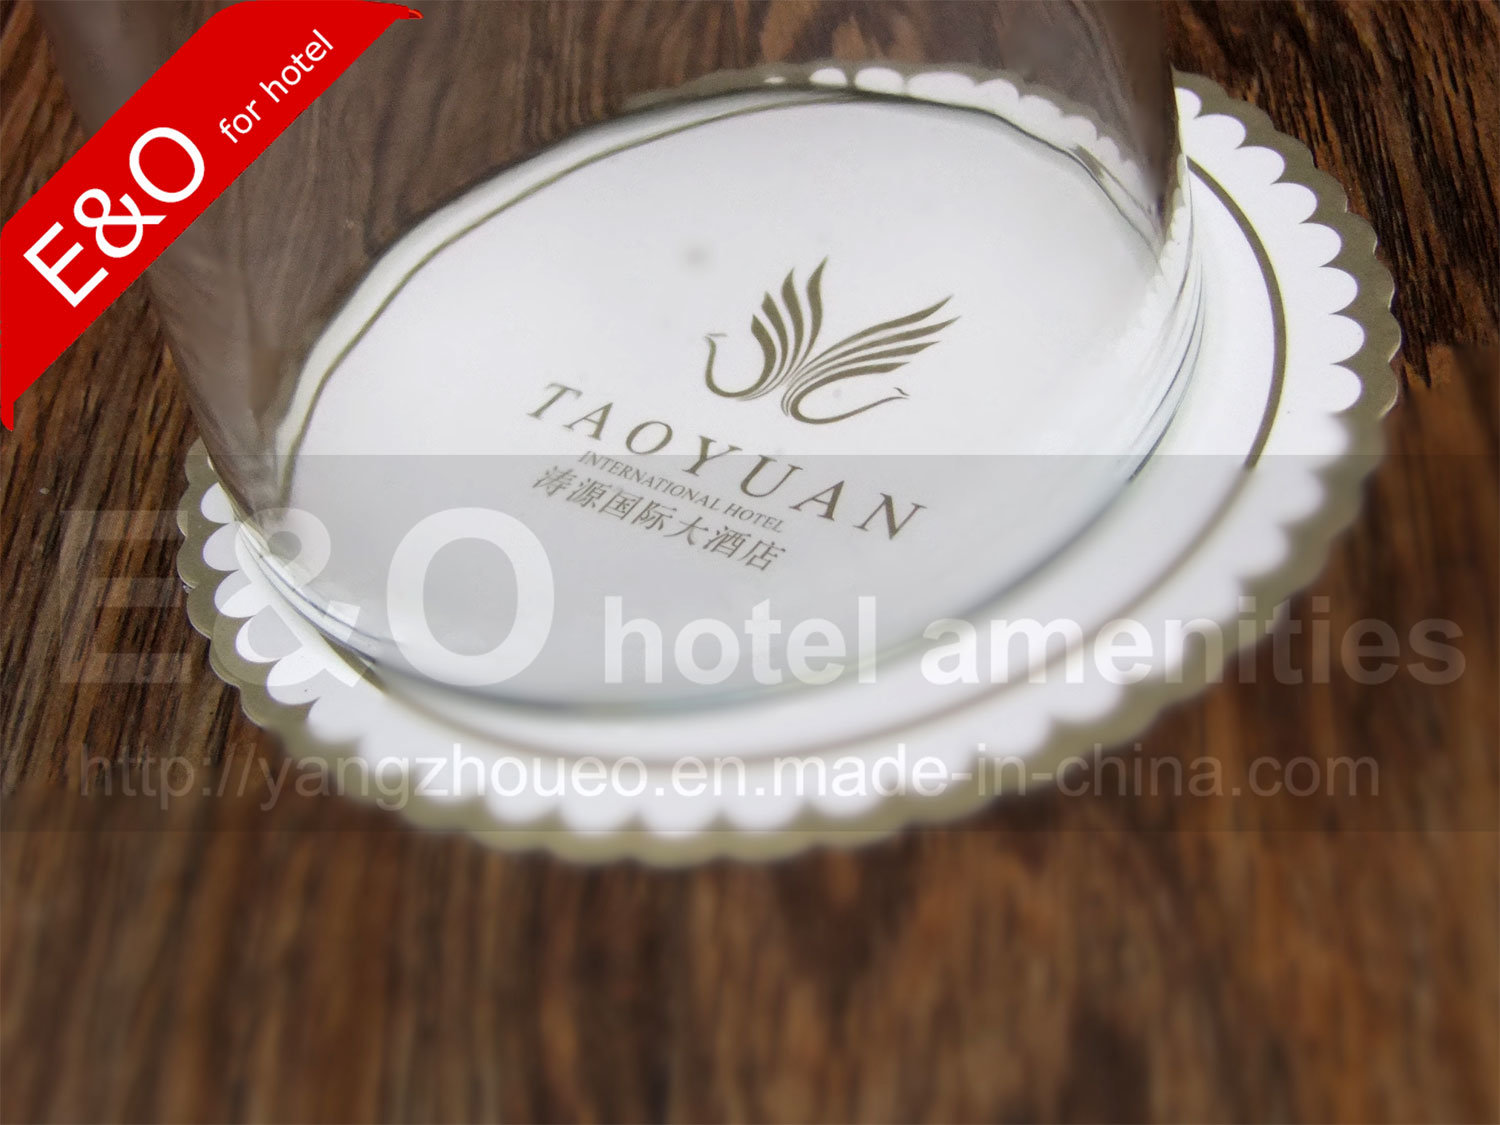 Absorbent Hotel Paper Coaster, Hotel Tissue Paper Disposable Coaster, Paper Cup Lid